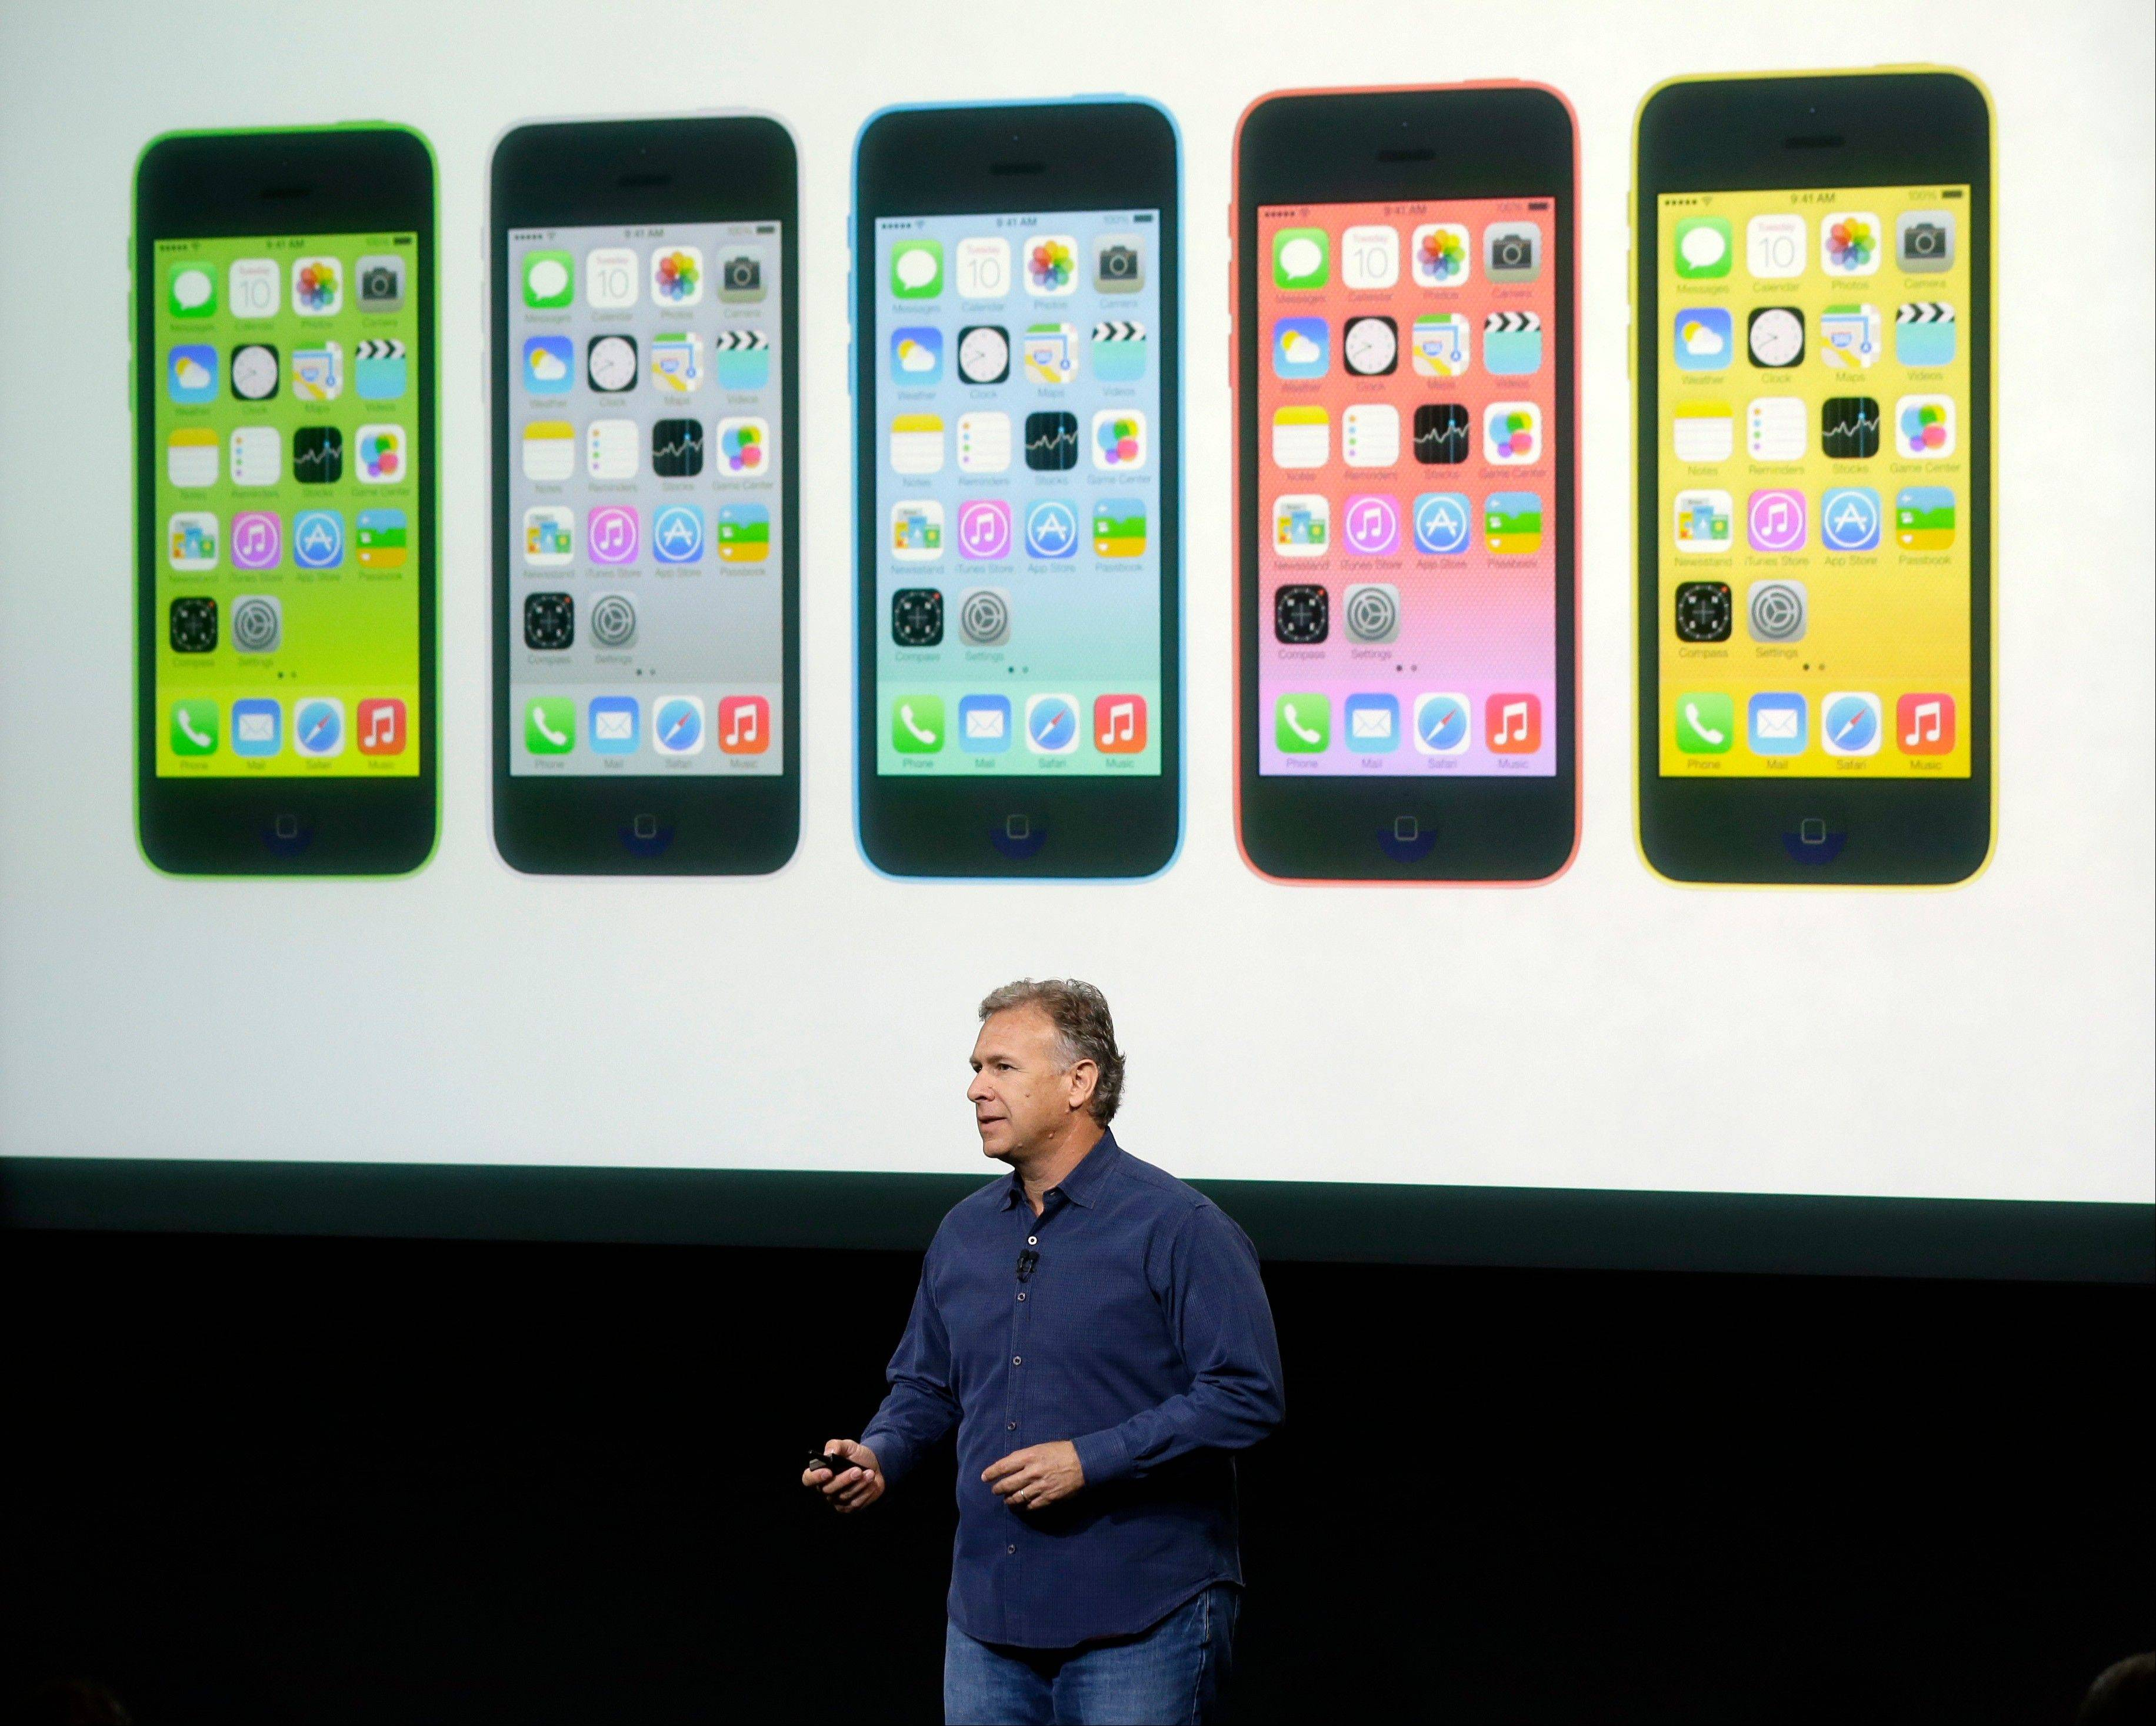 Phil Schiller, Apple's senior vice president of worldwide product marketing, speaks on stage during the introduction of the new iPhone 5c in Cupertino, Calif., Tuesday, Sept. 10, 2013.